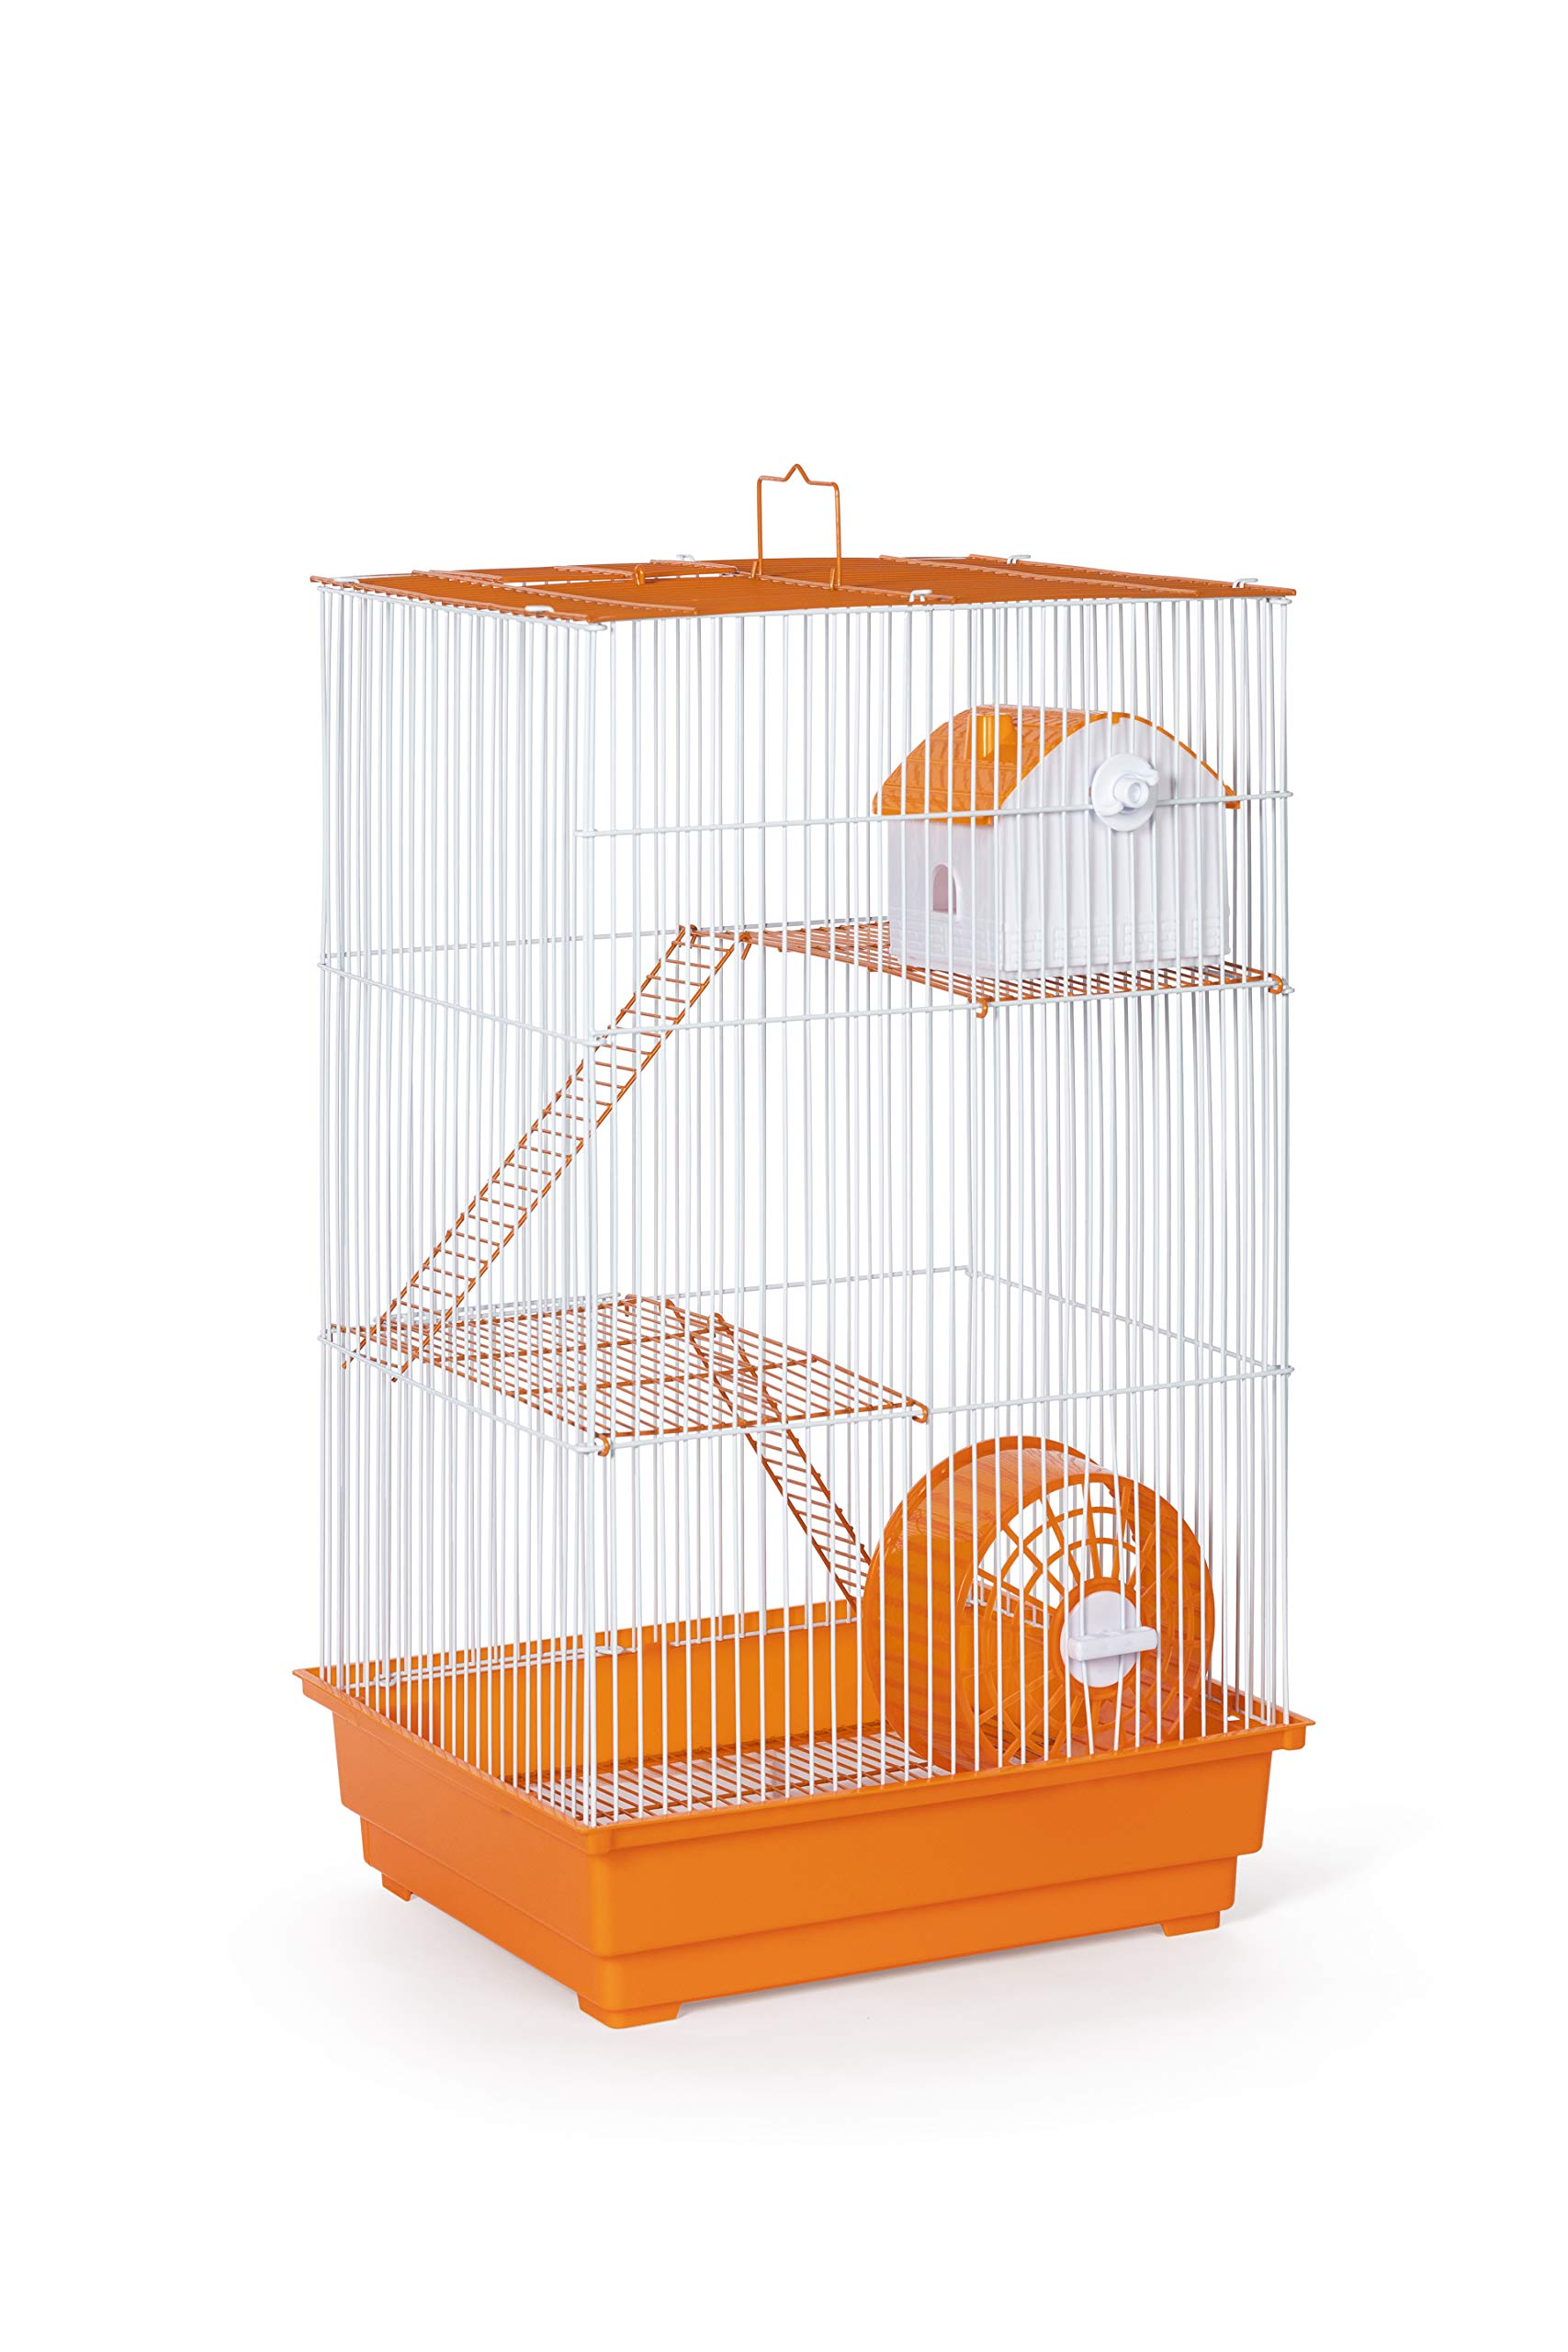 Prevue Pet Products Three-Story Hamster & Gerbil Cage Orange & White SP2030O by Prevue Pet Products (Image #4)